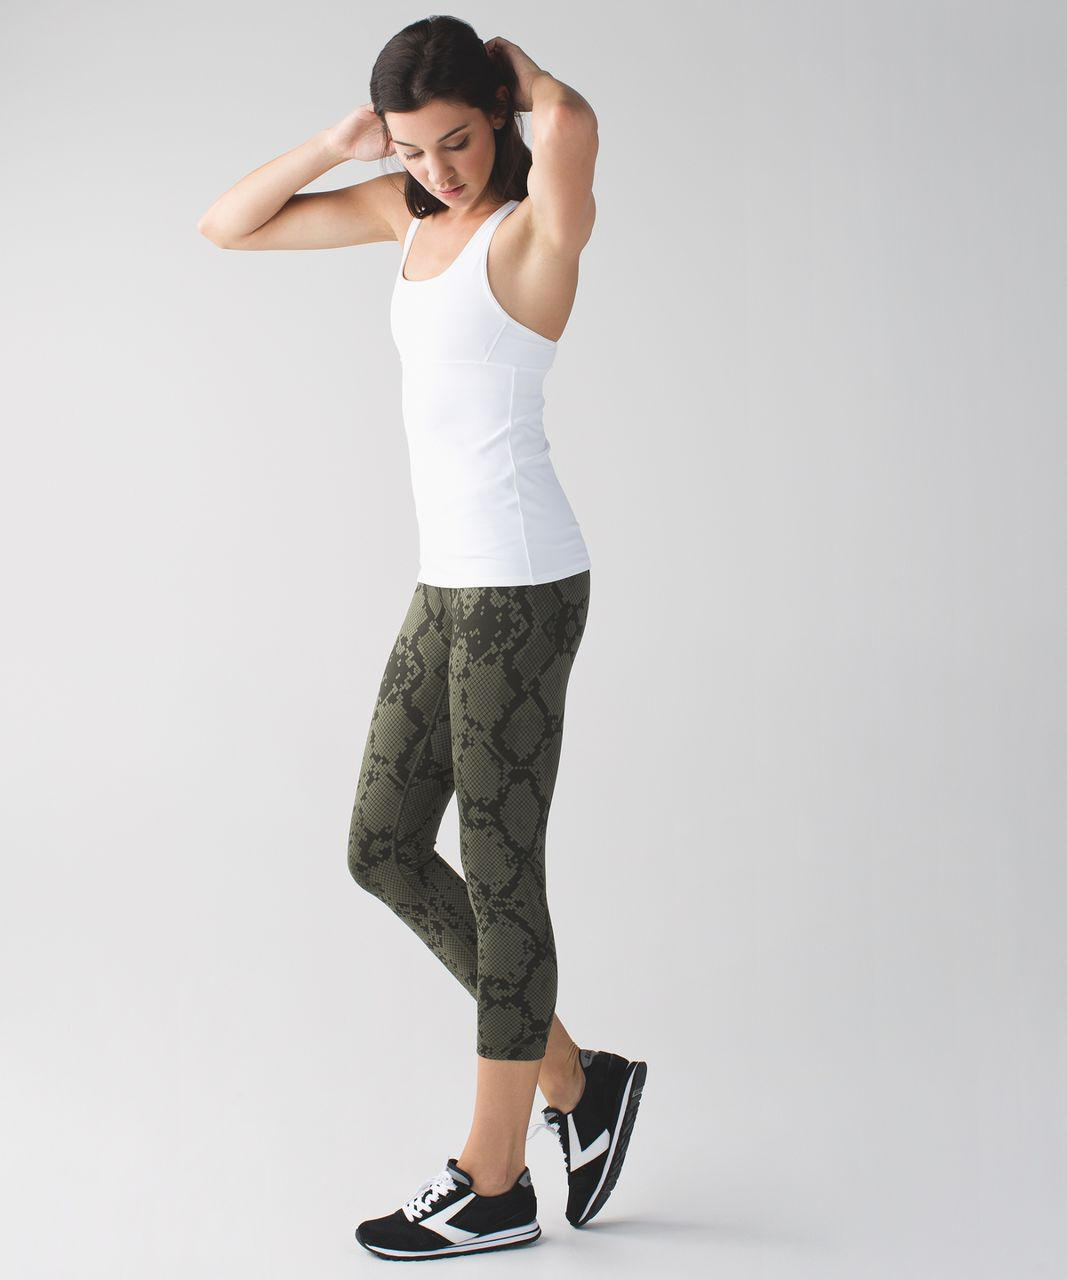 Lululemon Wunder Under Crop III *Full-On Luon - Ziggy Snake Fatigue Green Gator Green